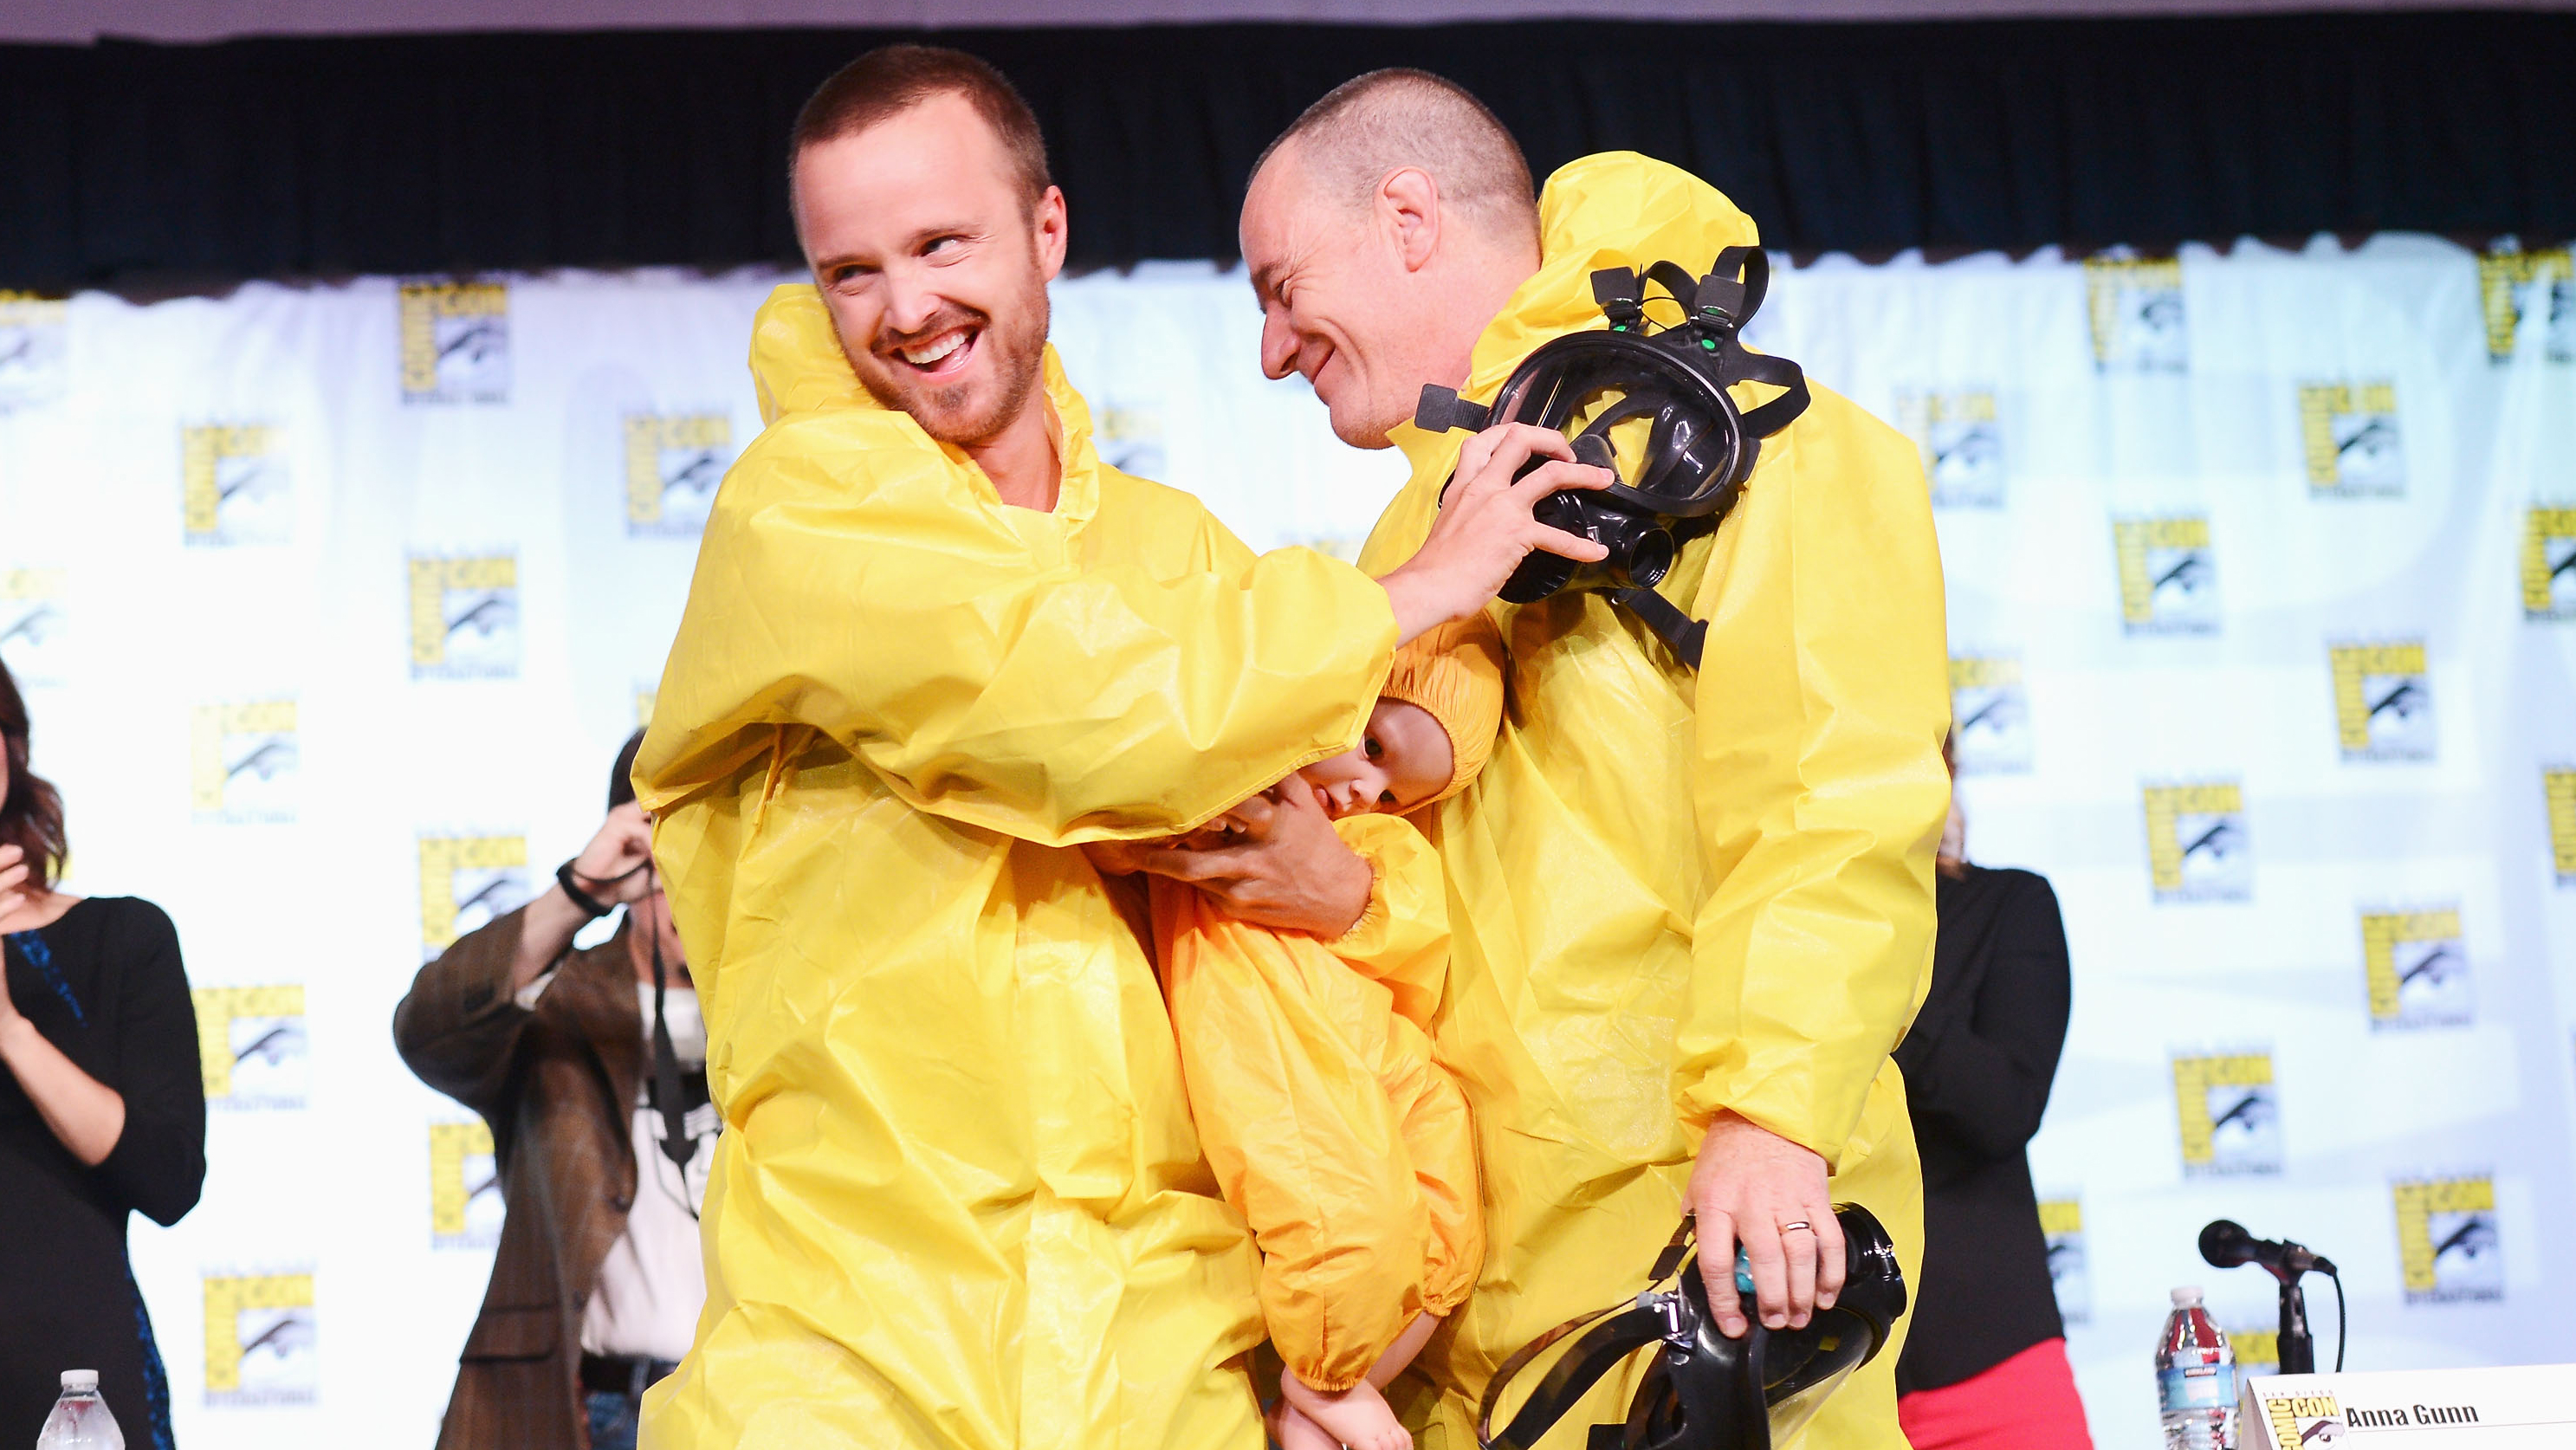 Actors Aaron Paul and Bryan Cranston speak at AMC's 'Breaking Bad' Panel during Comic-Con International 2012 at San Diego Convention Center on July 13, 2012 in San Diego, California.